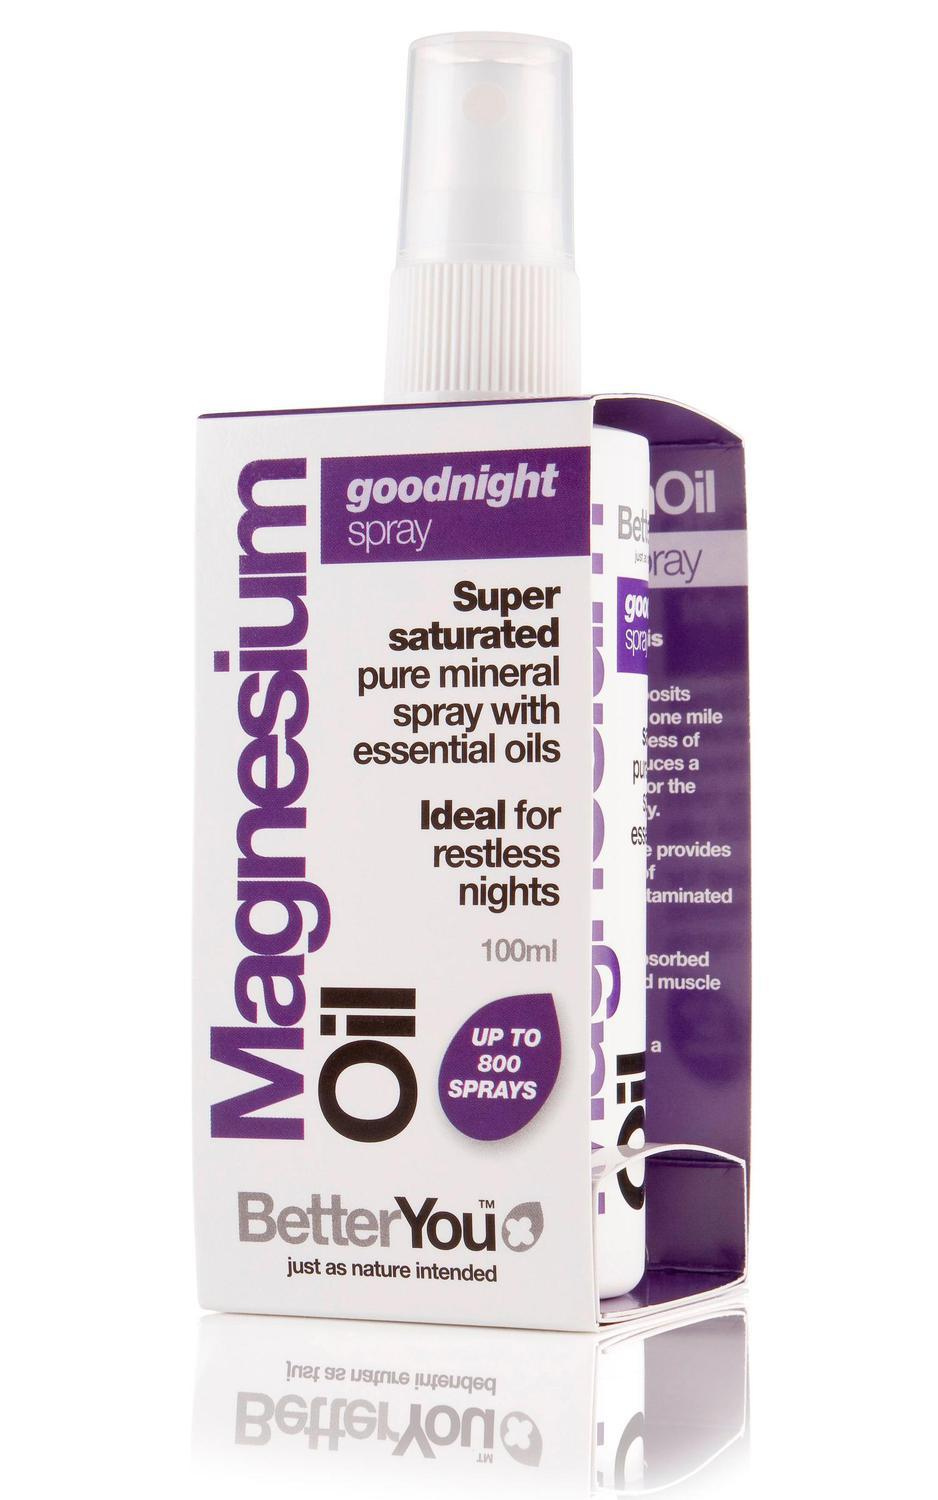 What is magnesium oil spray used for